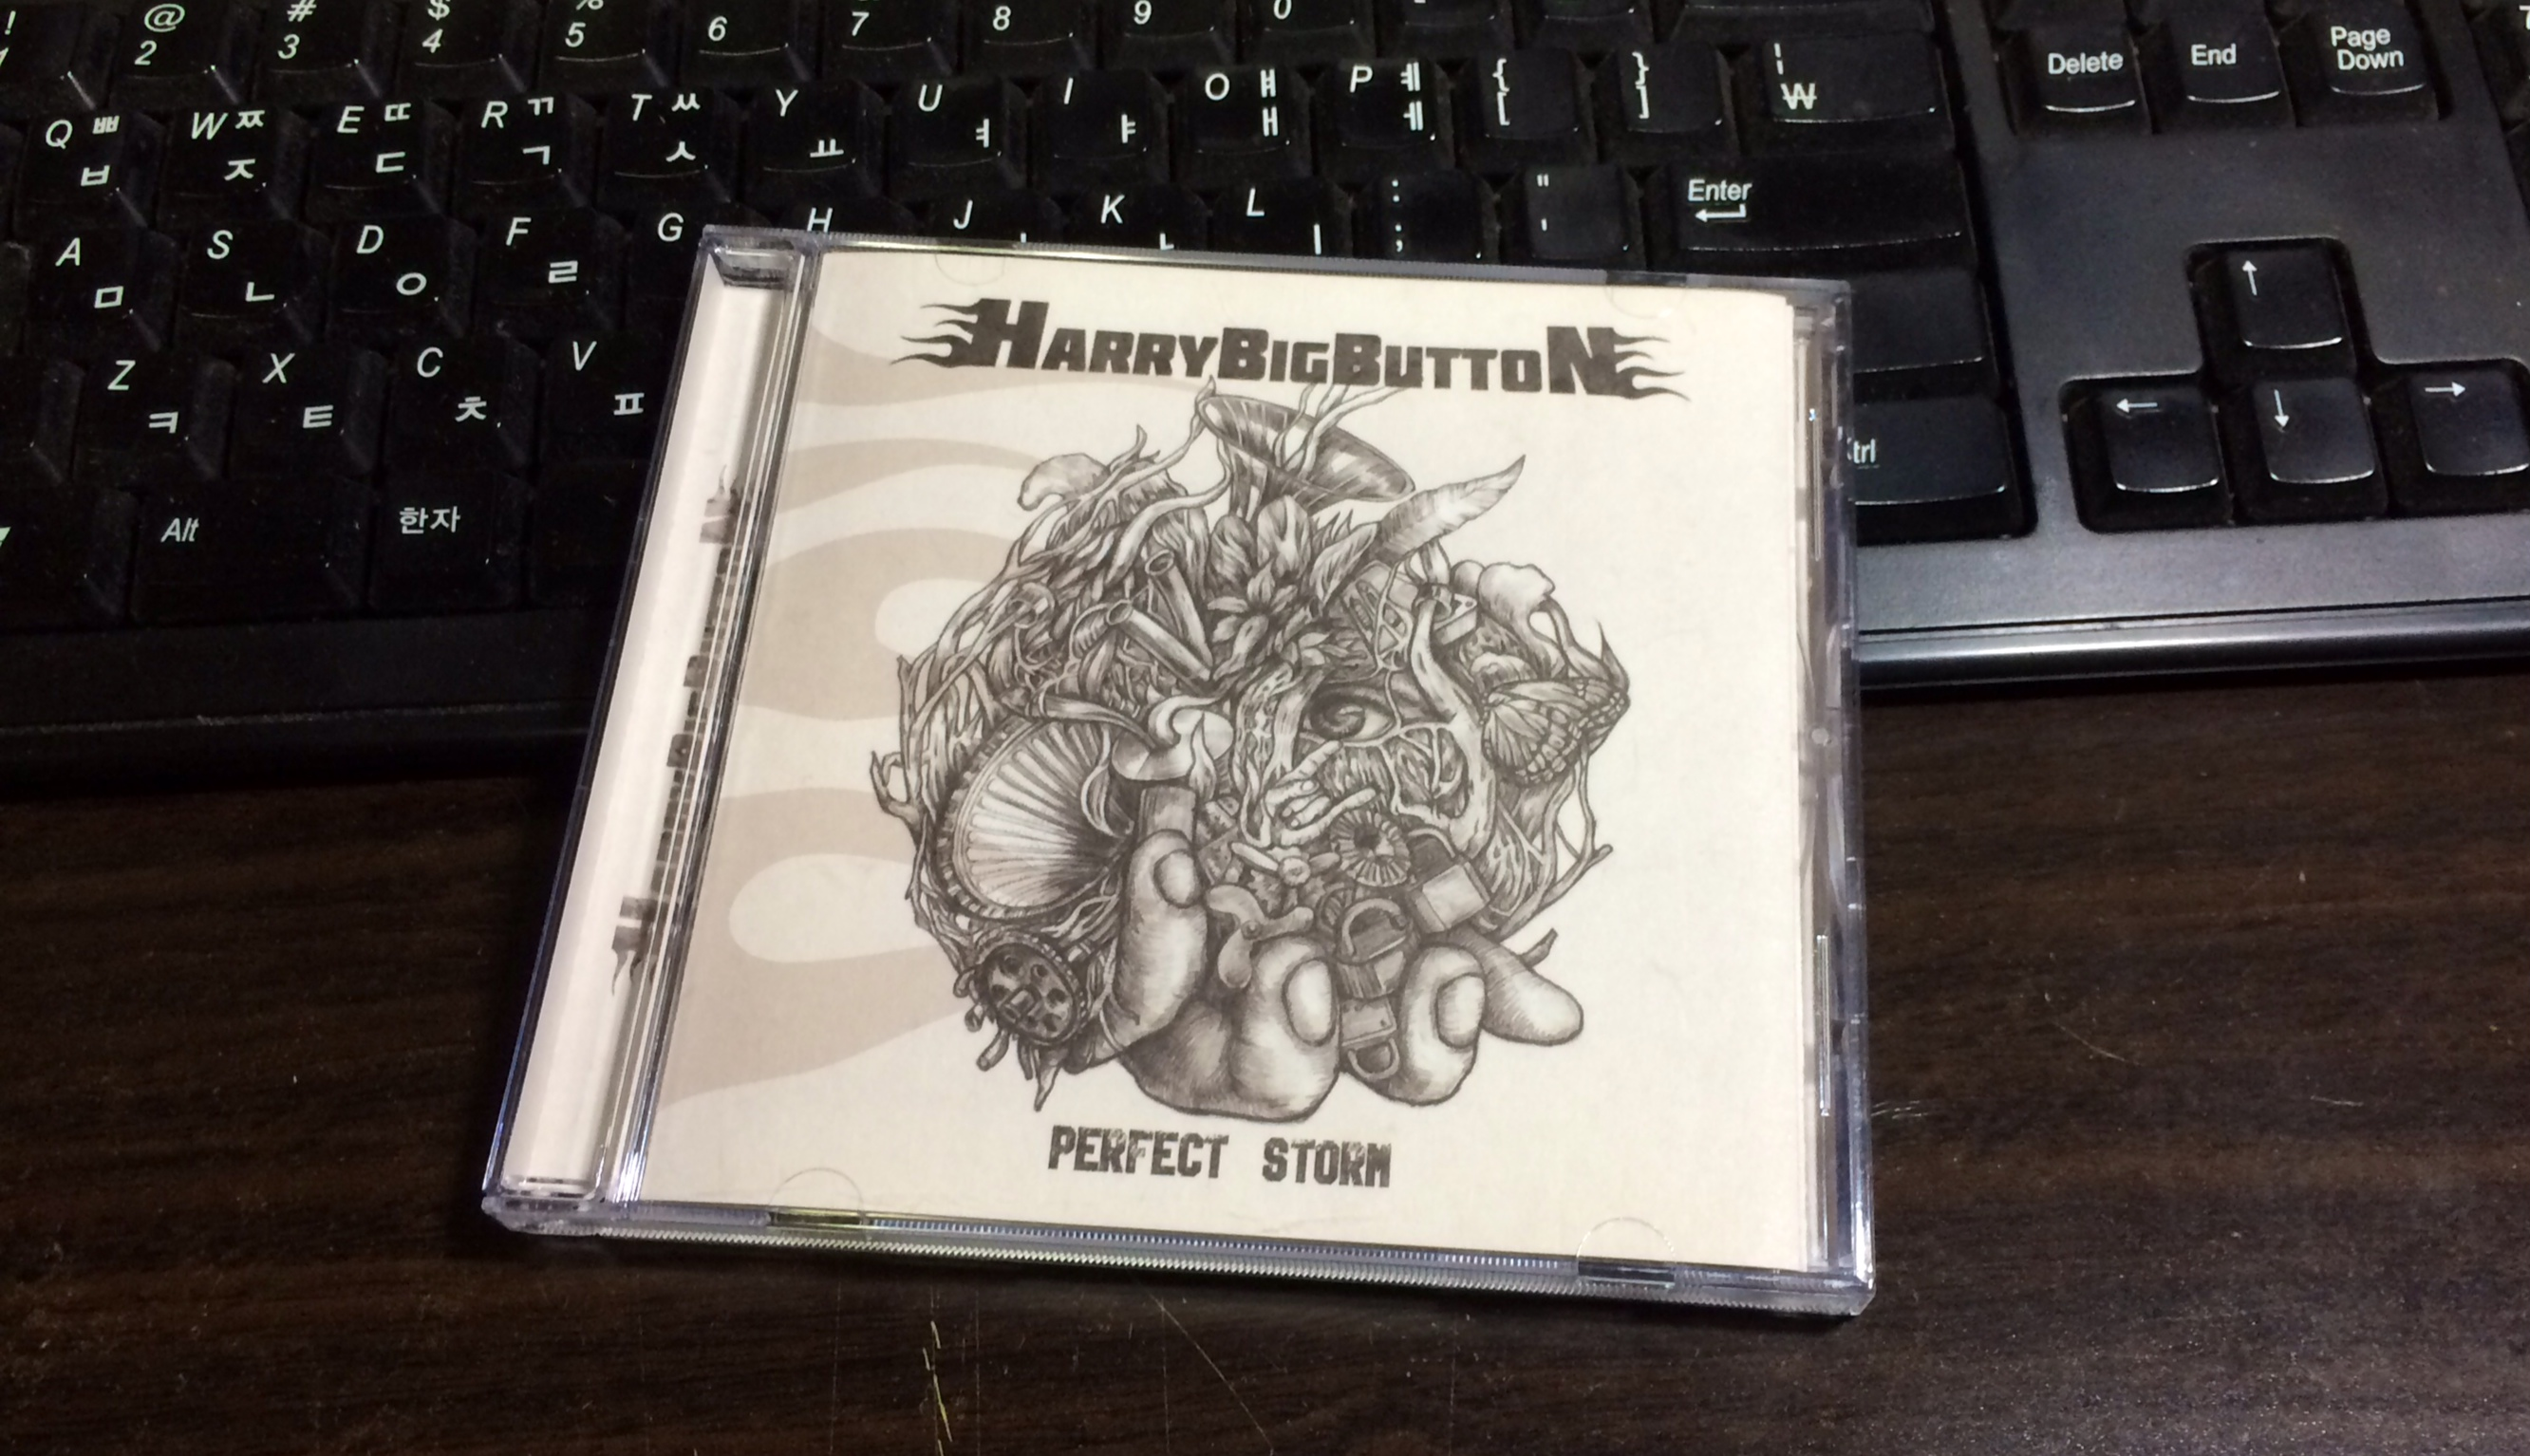 Perfect Storm - Harry Big Button / 2014